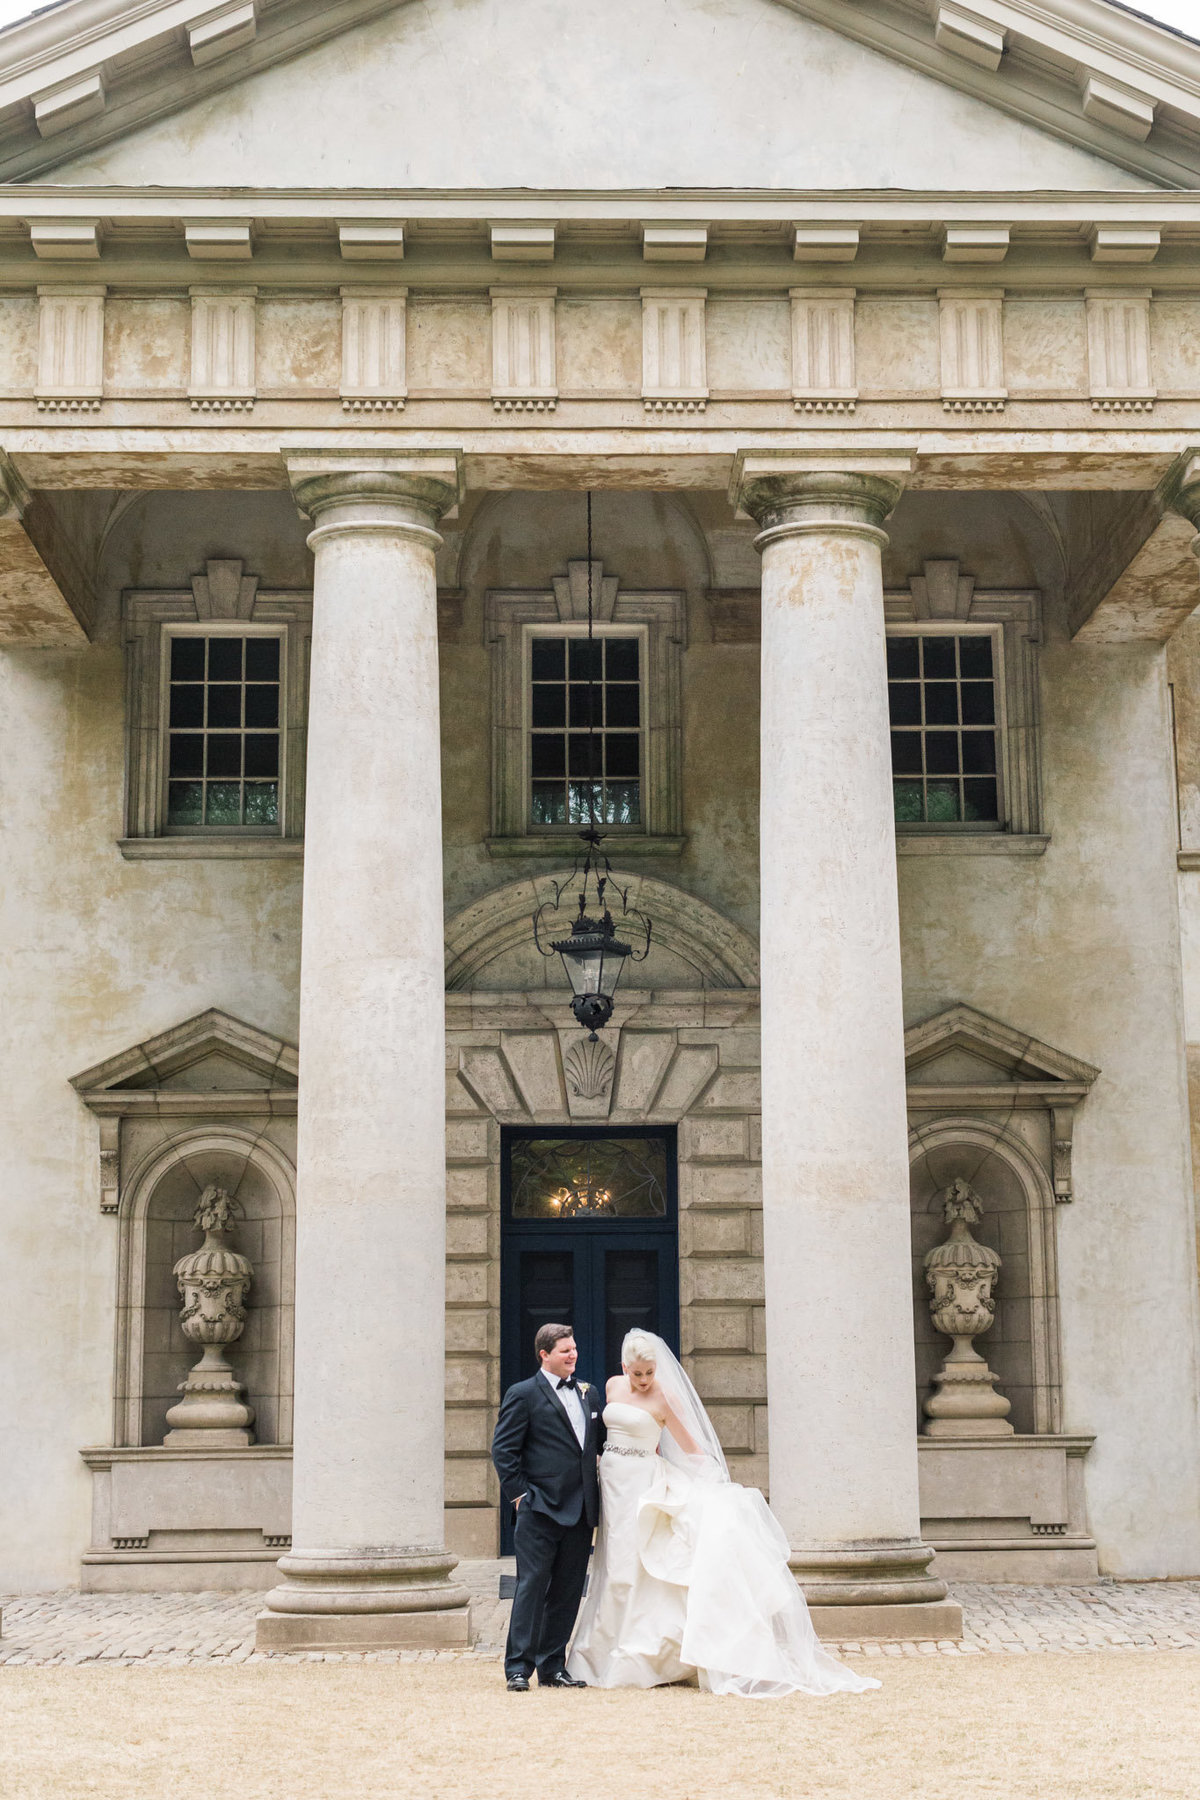 Romantic bride and groom photos in front of the Swan House. Photo by luxury destination wedding photographer Rebecca Cerasani.